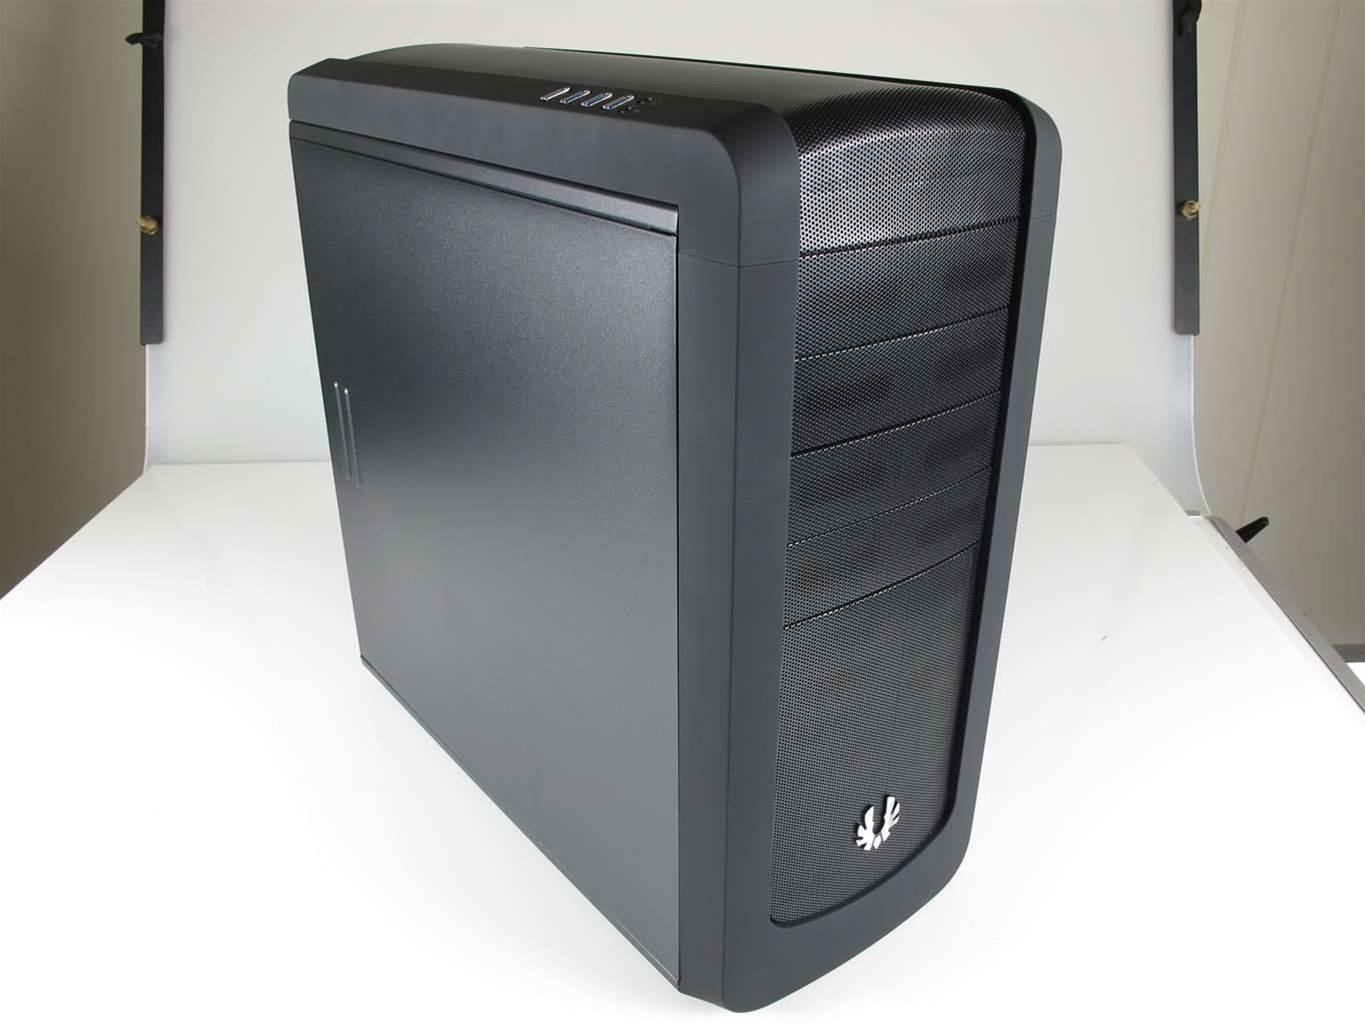 Bitfenix's Raider case gets three thumbs up